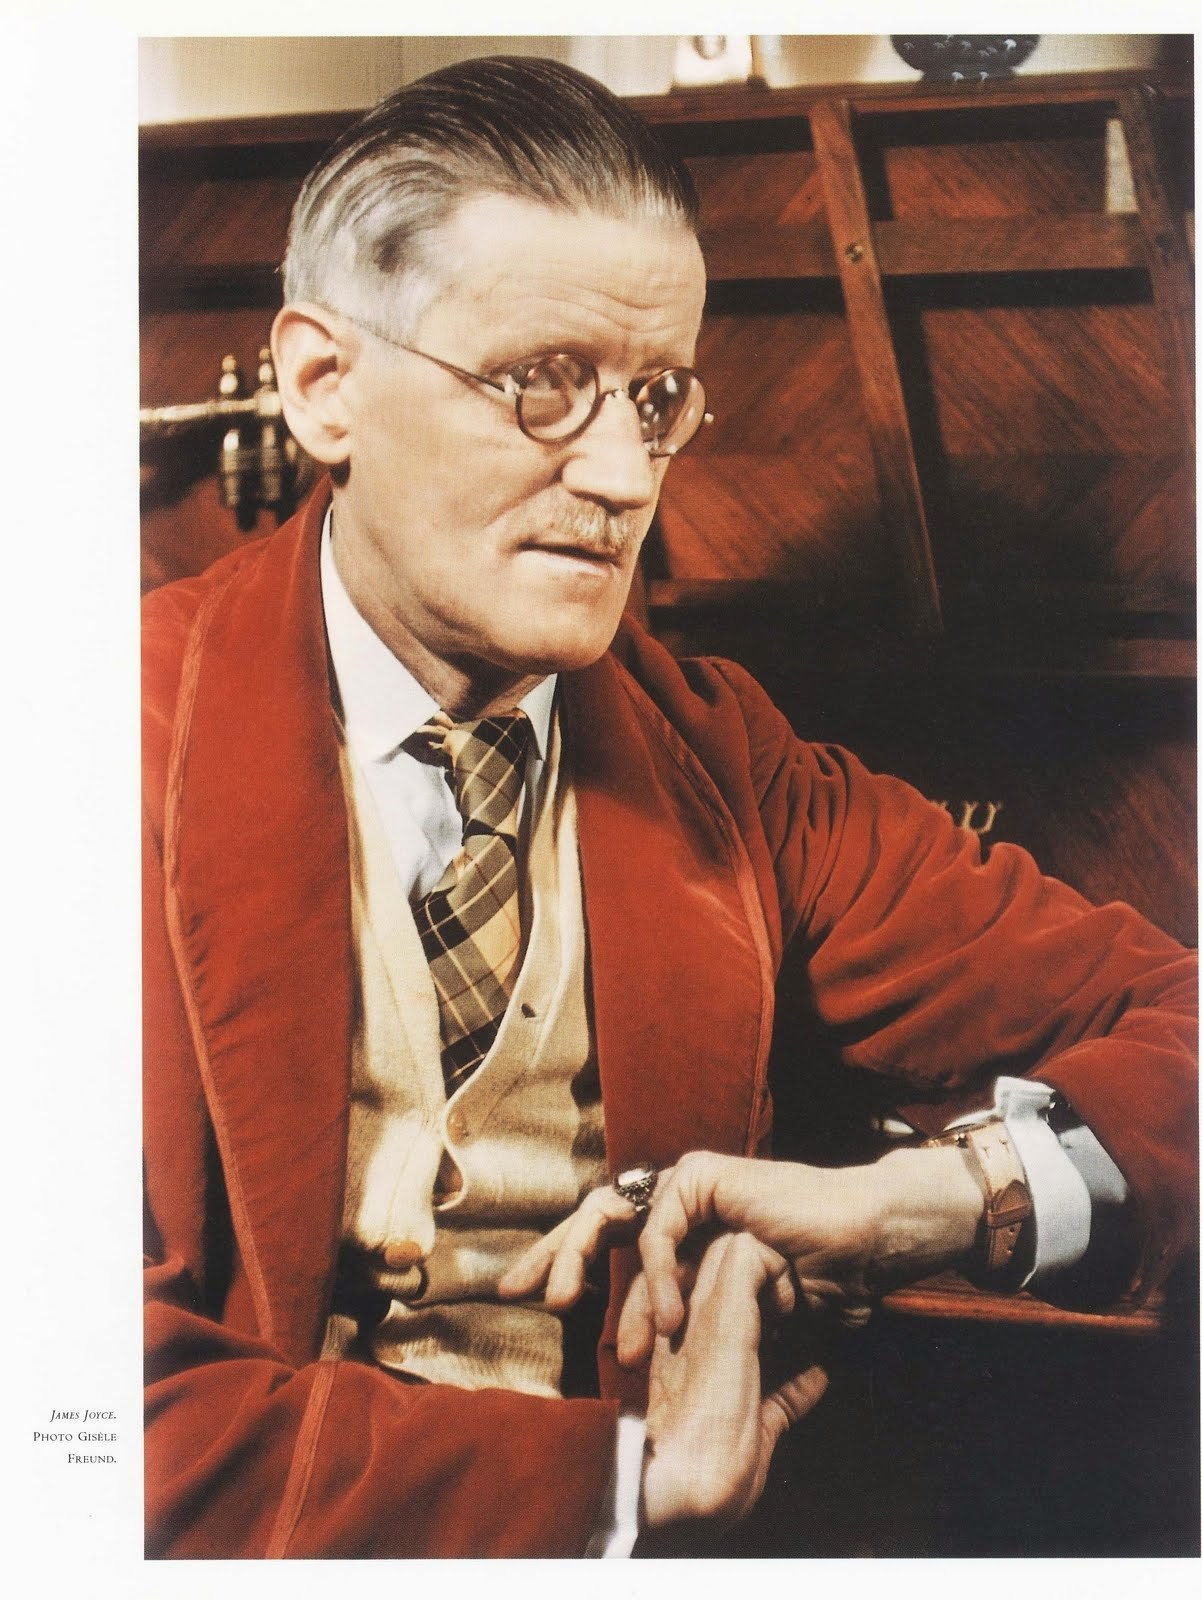 james joyce known people famous people news and biographies james joyce james joyce